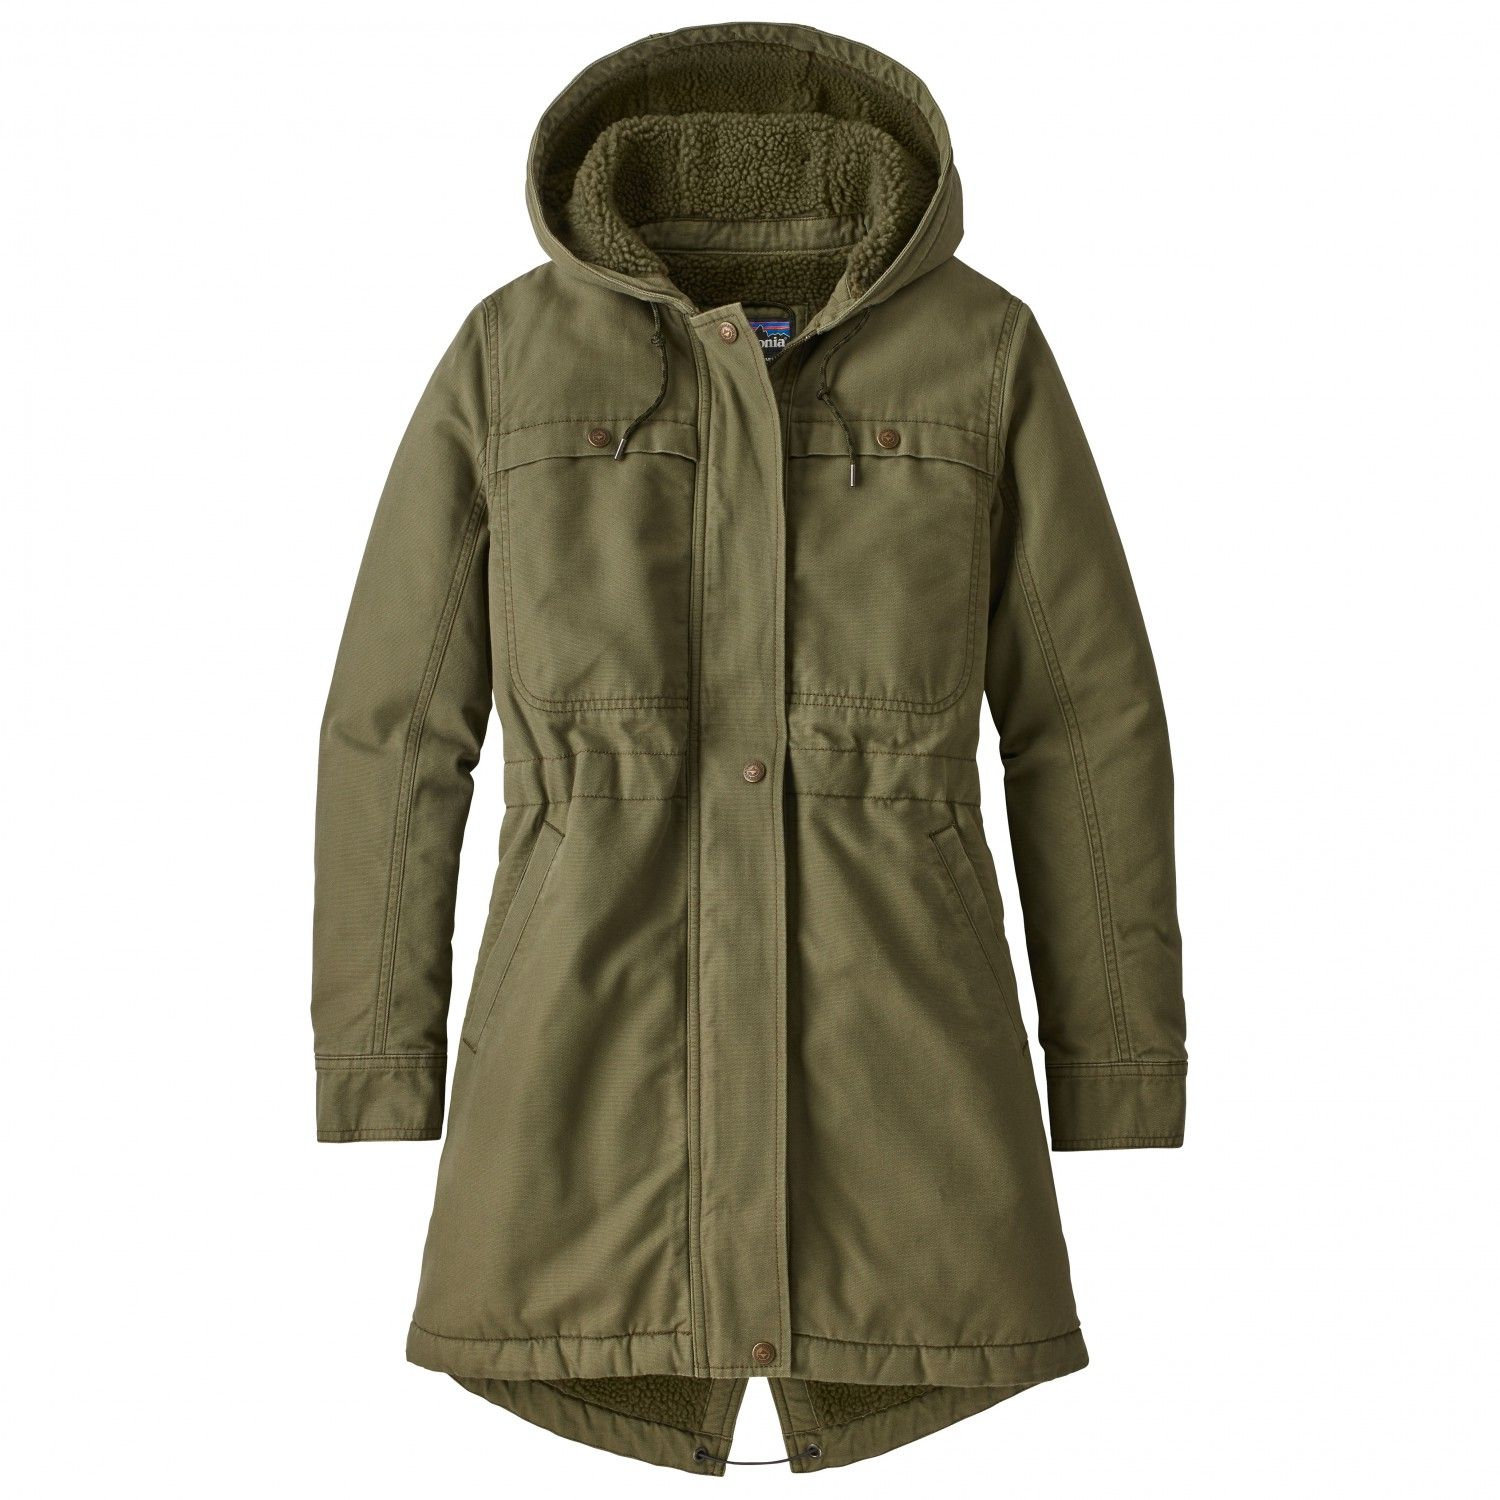 dfba272a1c4 Patagonia - Women s Insulated Prairie Dawn Parka - Coat in 2019 ...